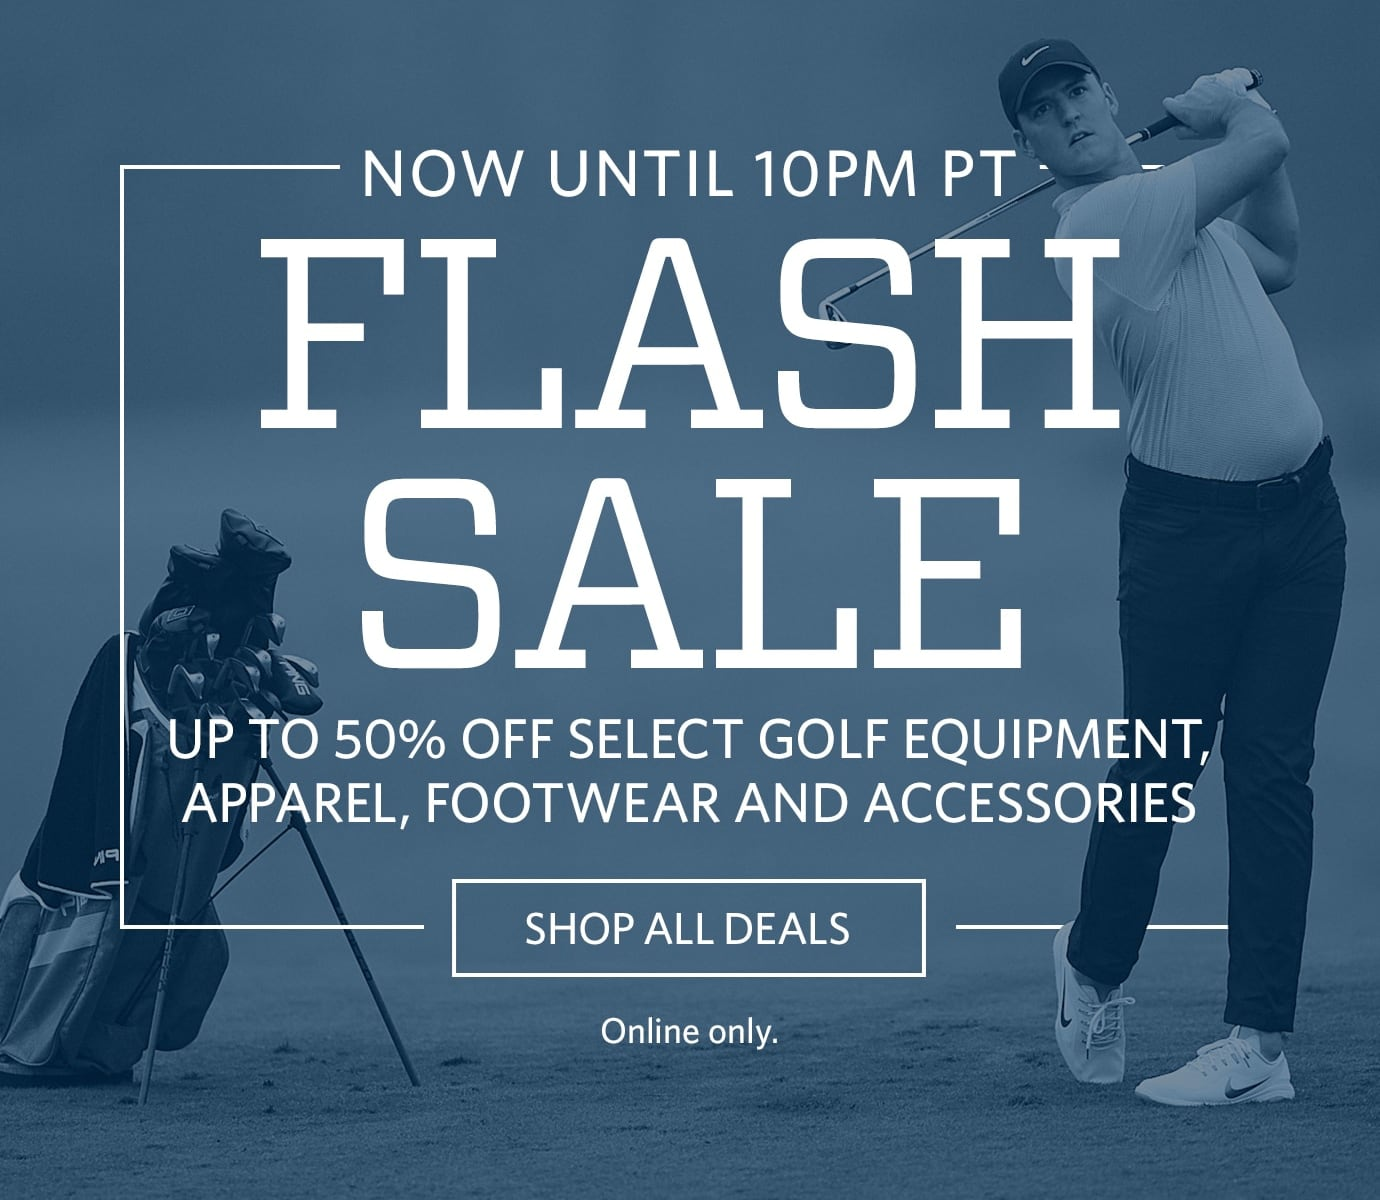 Now Until 10PM PT | Flash Sale | Up To 50% Off Select Golf Equipment, Apparel, Footwear, and Accessories | SHOP ALL DEALS | Online Only. After 10PM PT, Major Savings Up To 50% Off | Shop All Deals >